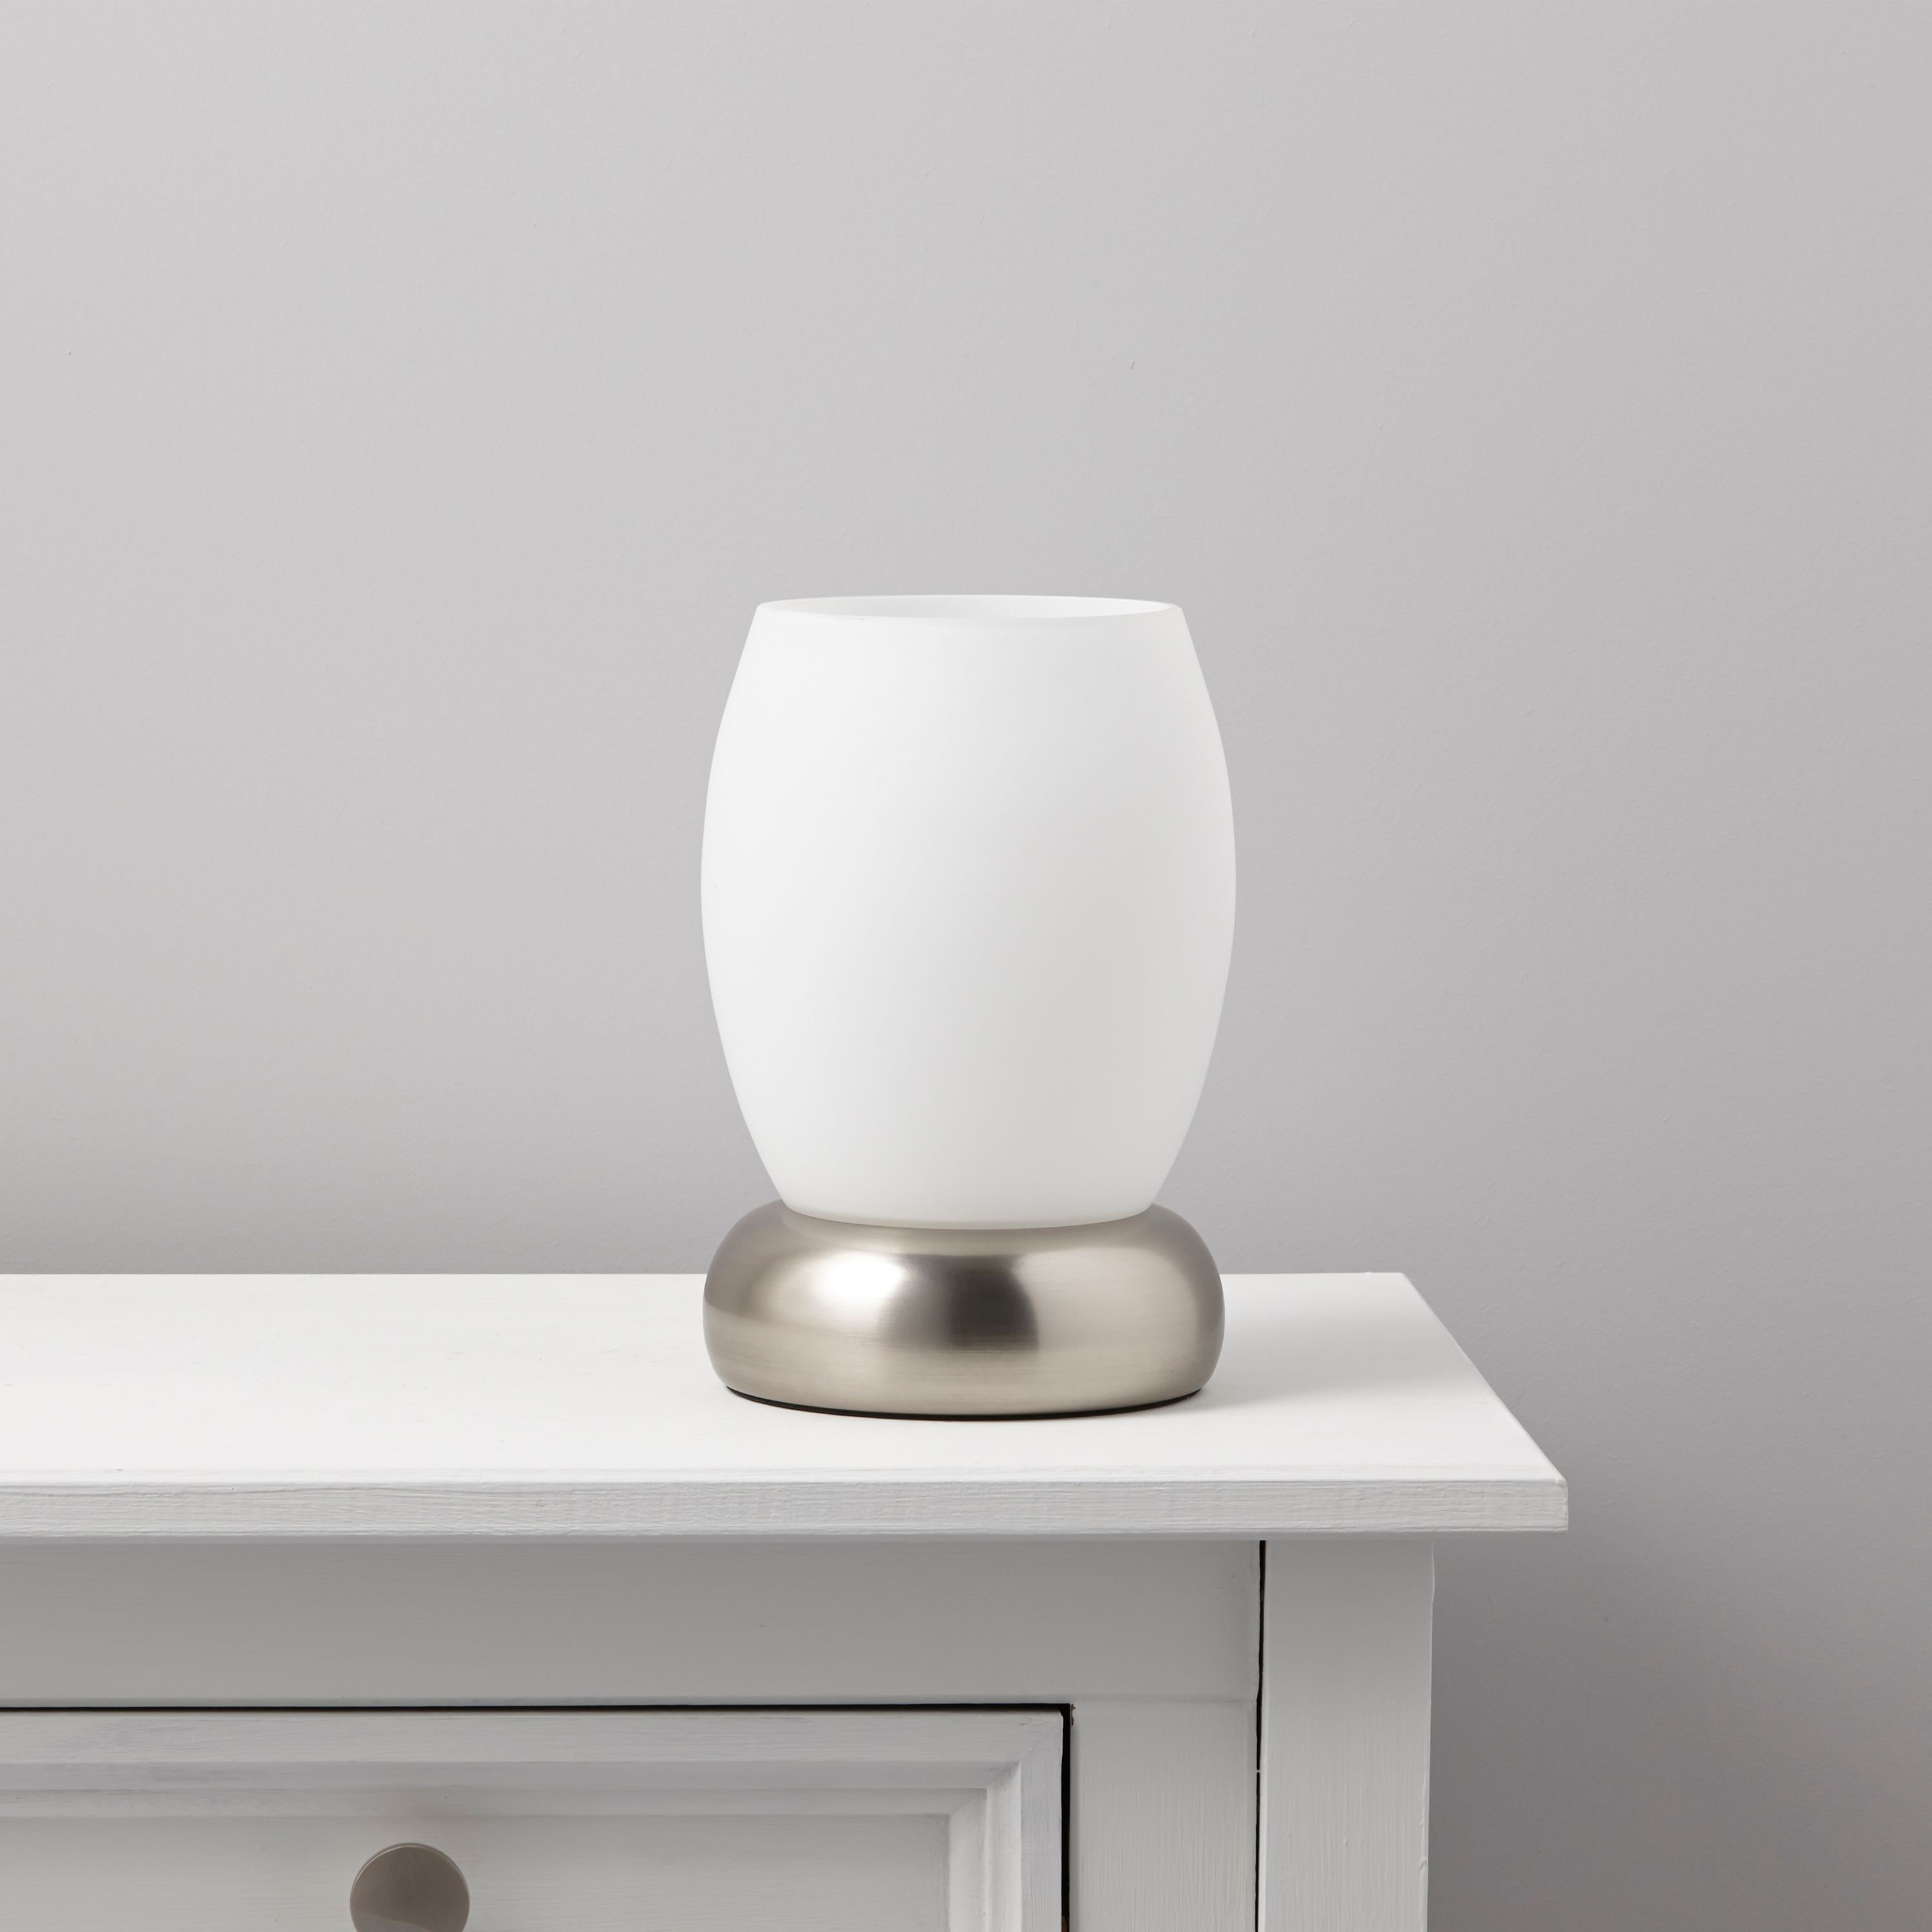 Roswell White Stainless Steel Effect Table Lamp | Departments ...